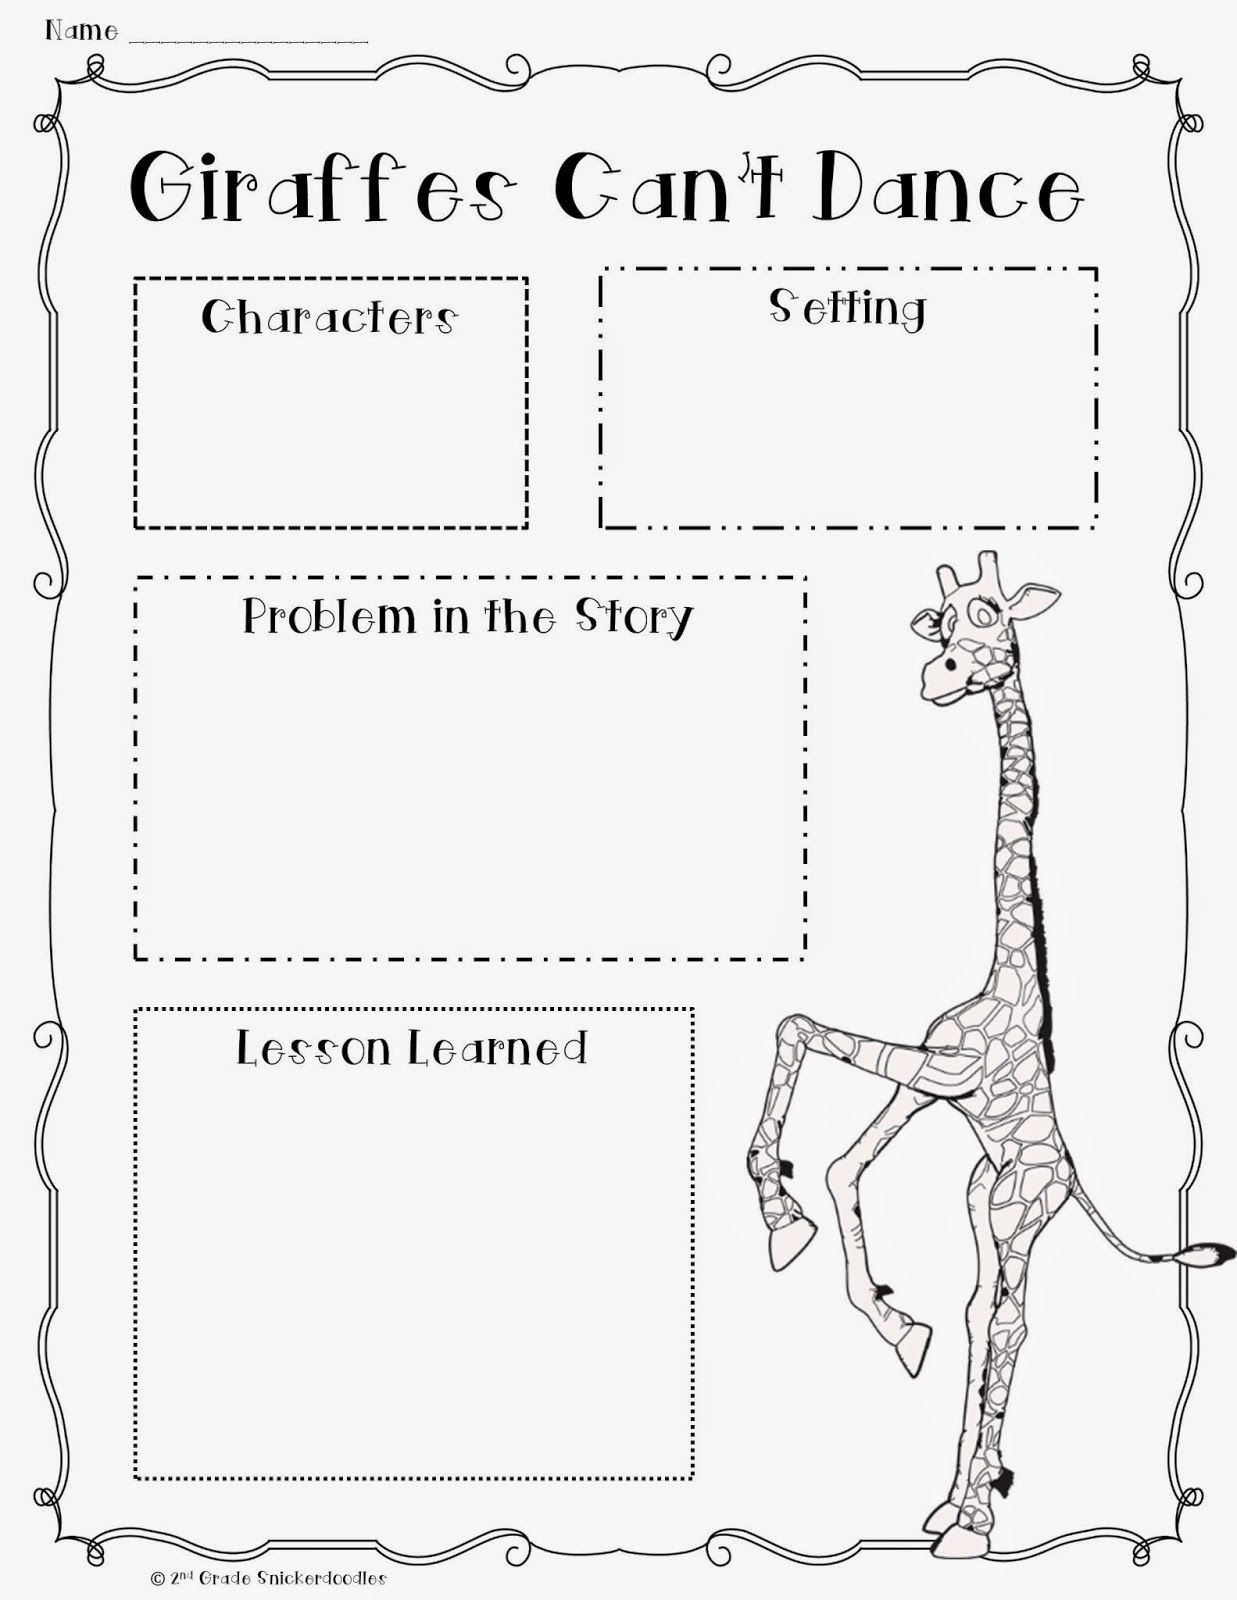 2nd Grade Snickerdoodles Giraffes Can T Dance Book Chat With A Freebie